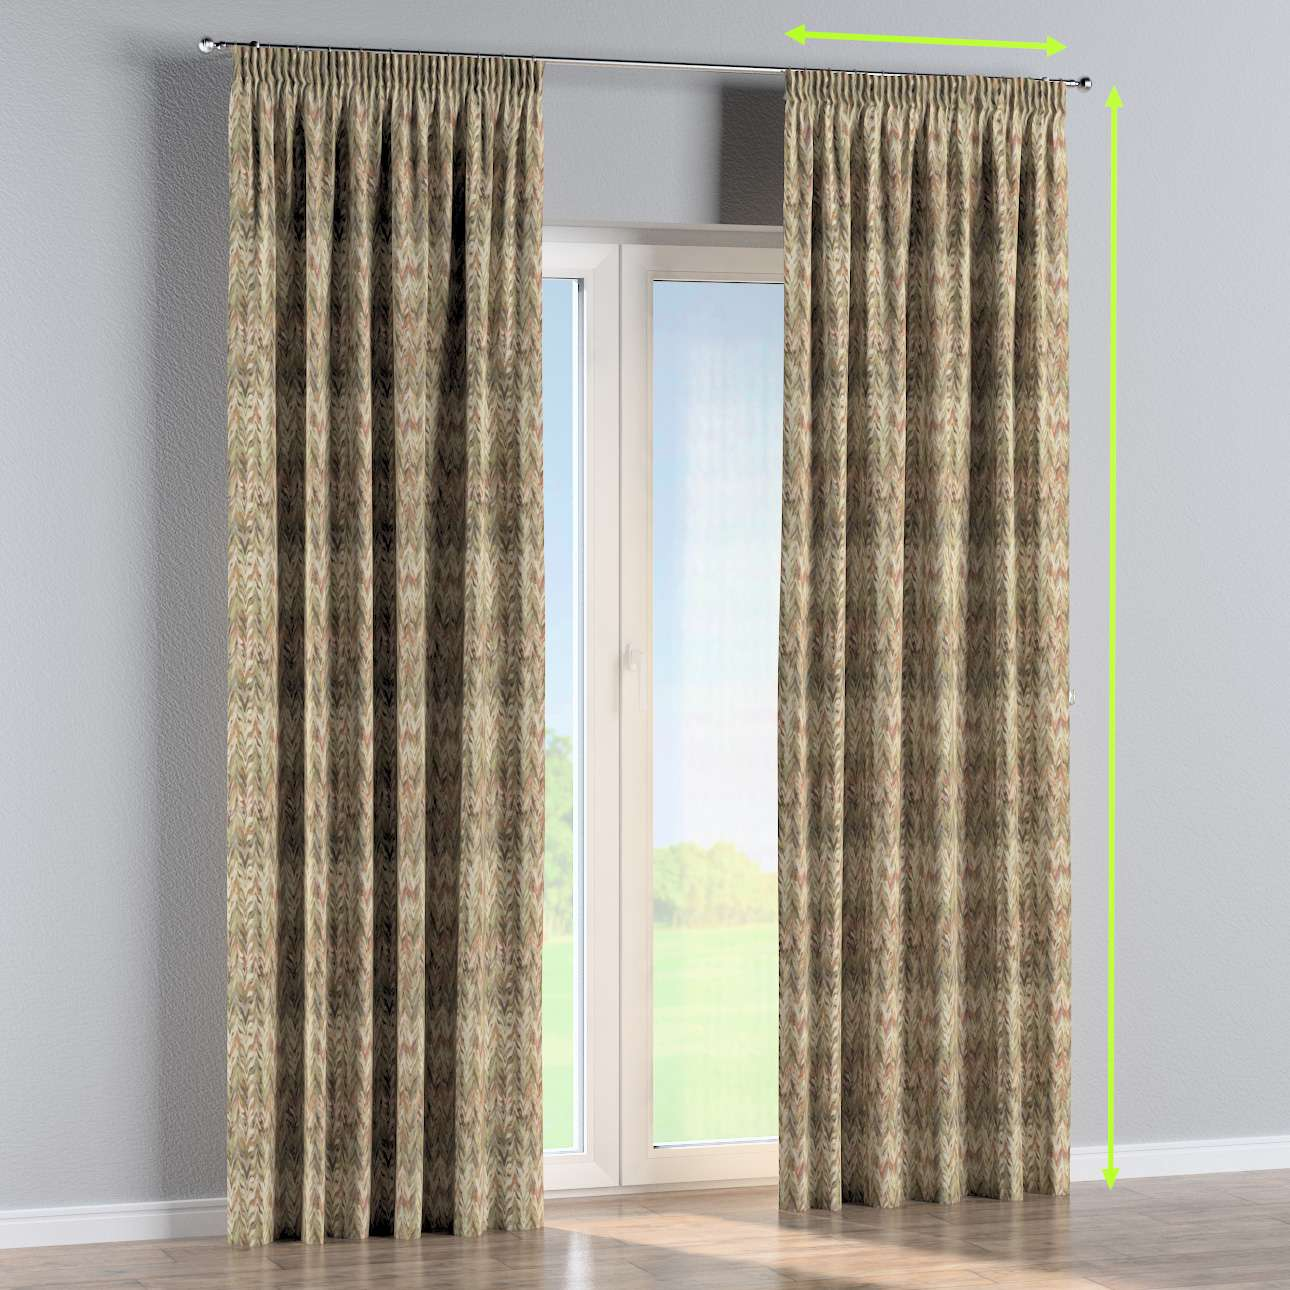 Pencil pleat curtain in collection Tropical Island, fabric: 142-66